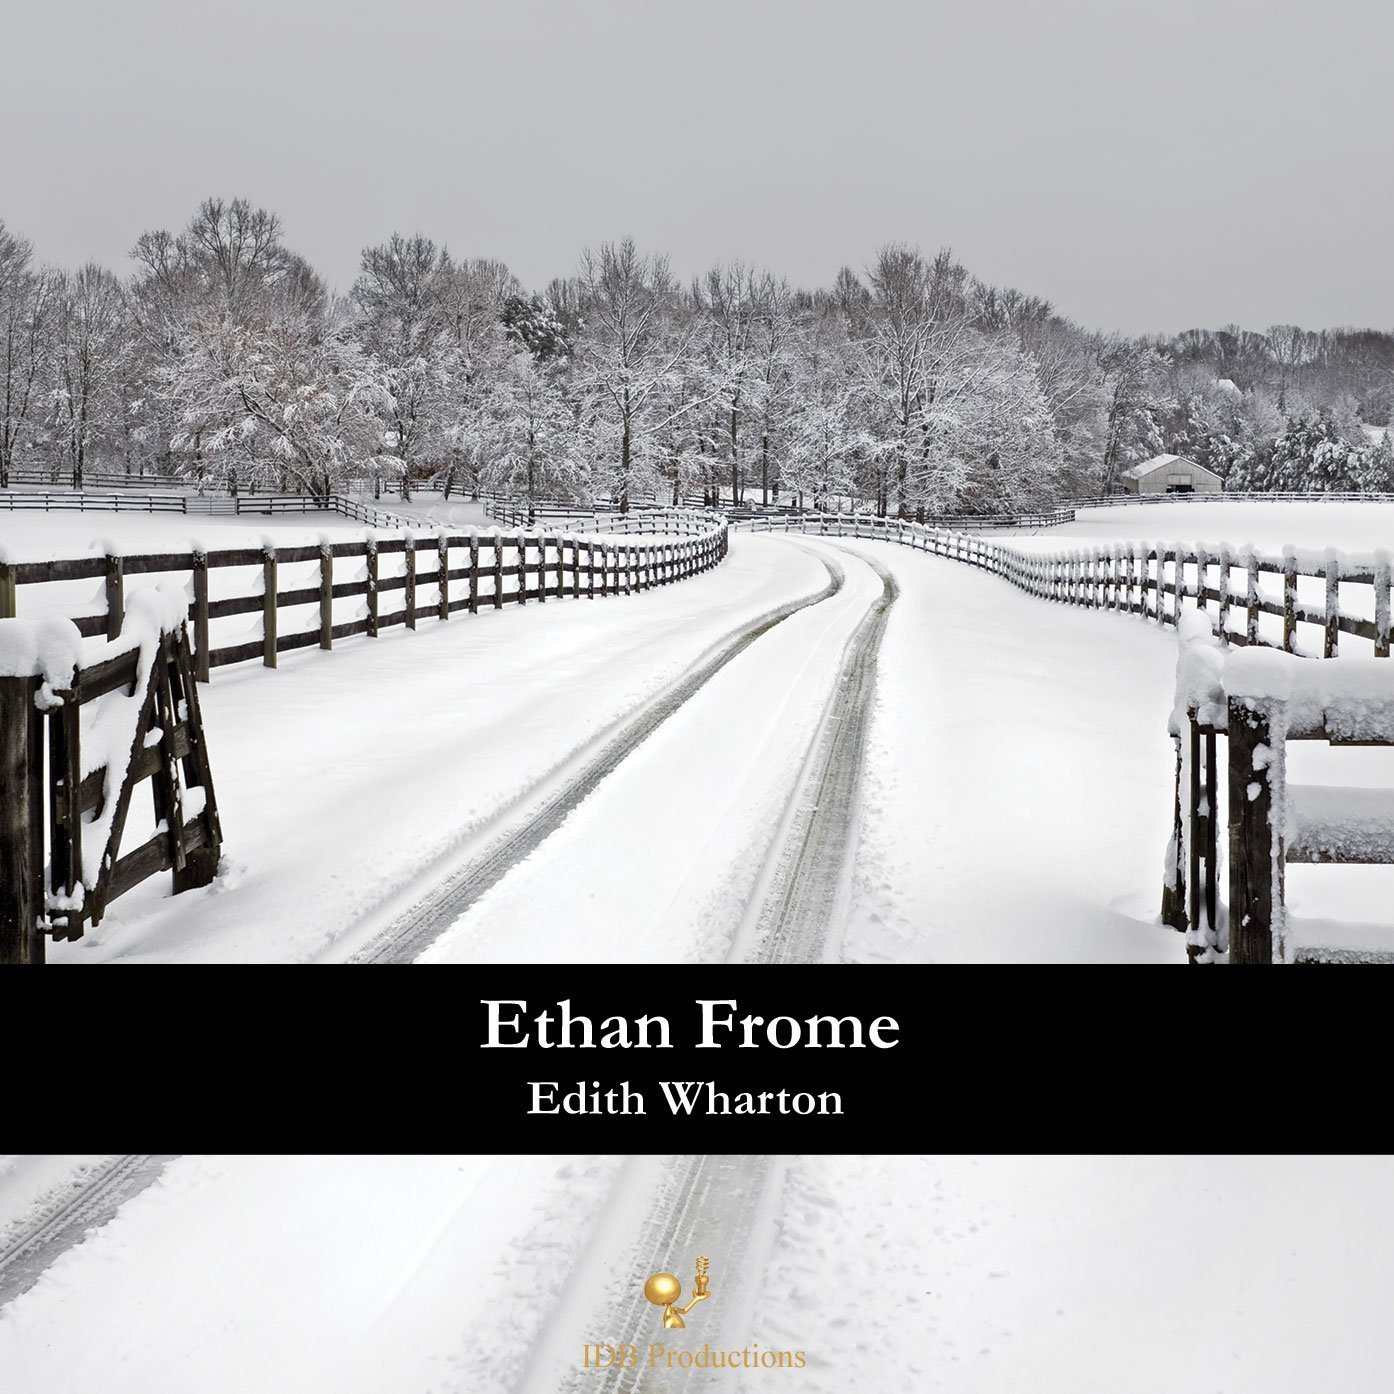 fantasy portrayed in edith whartons book ethan frome The character ethan, portrayed in edith whartons feminism is a key role in the book ethan frome by edith codependency in edith wharton's ethan frome.